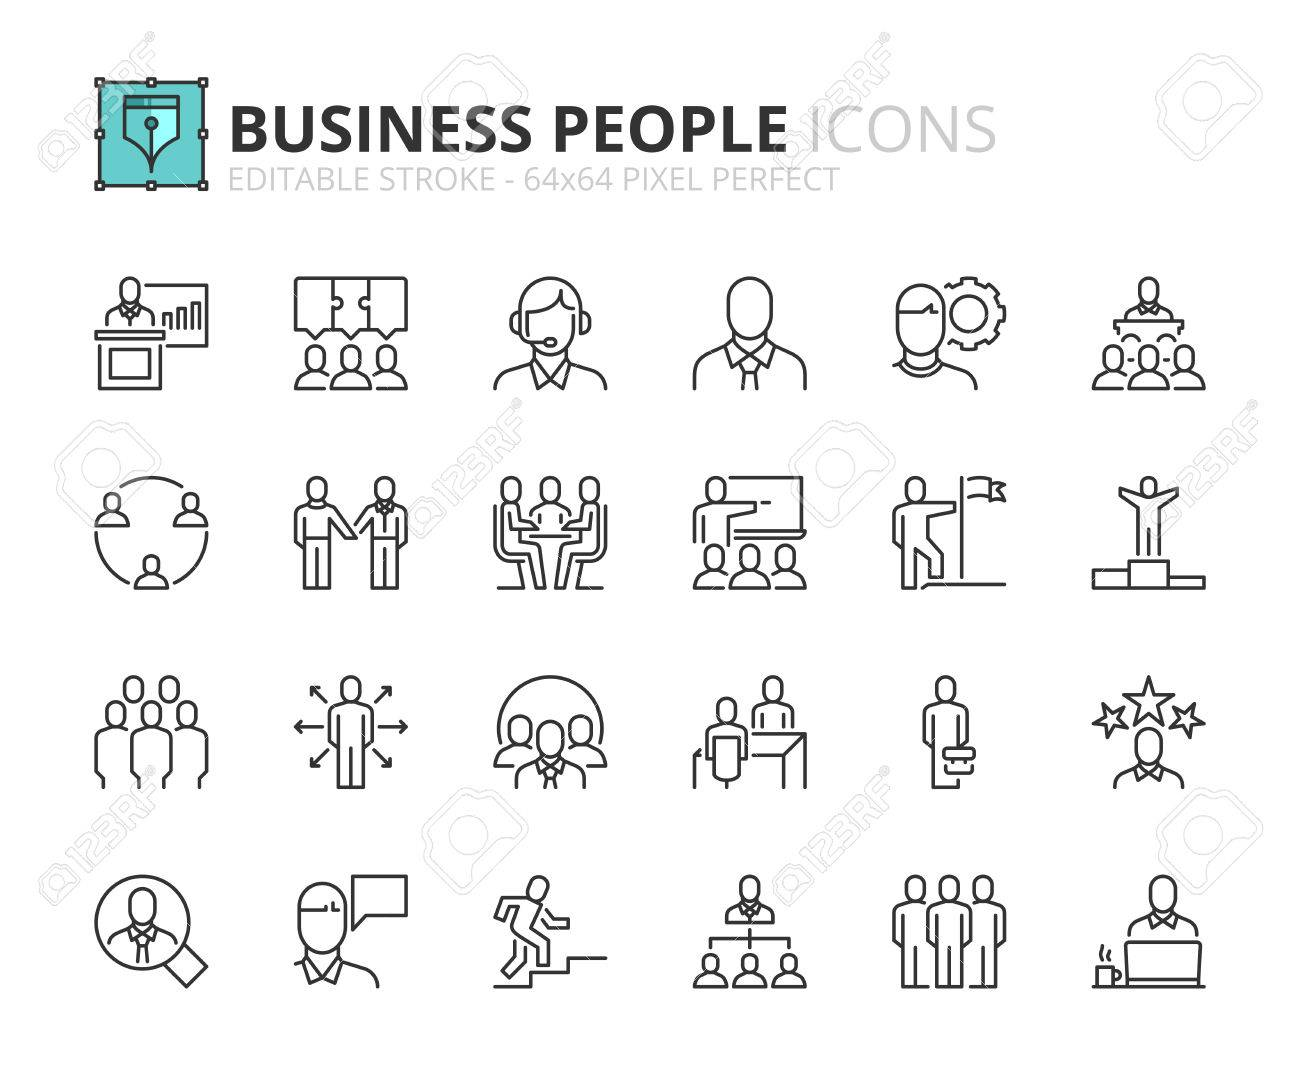 Outline icons about business people  Editable stroke  64x64 pixel